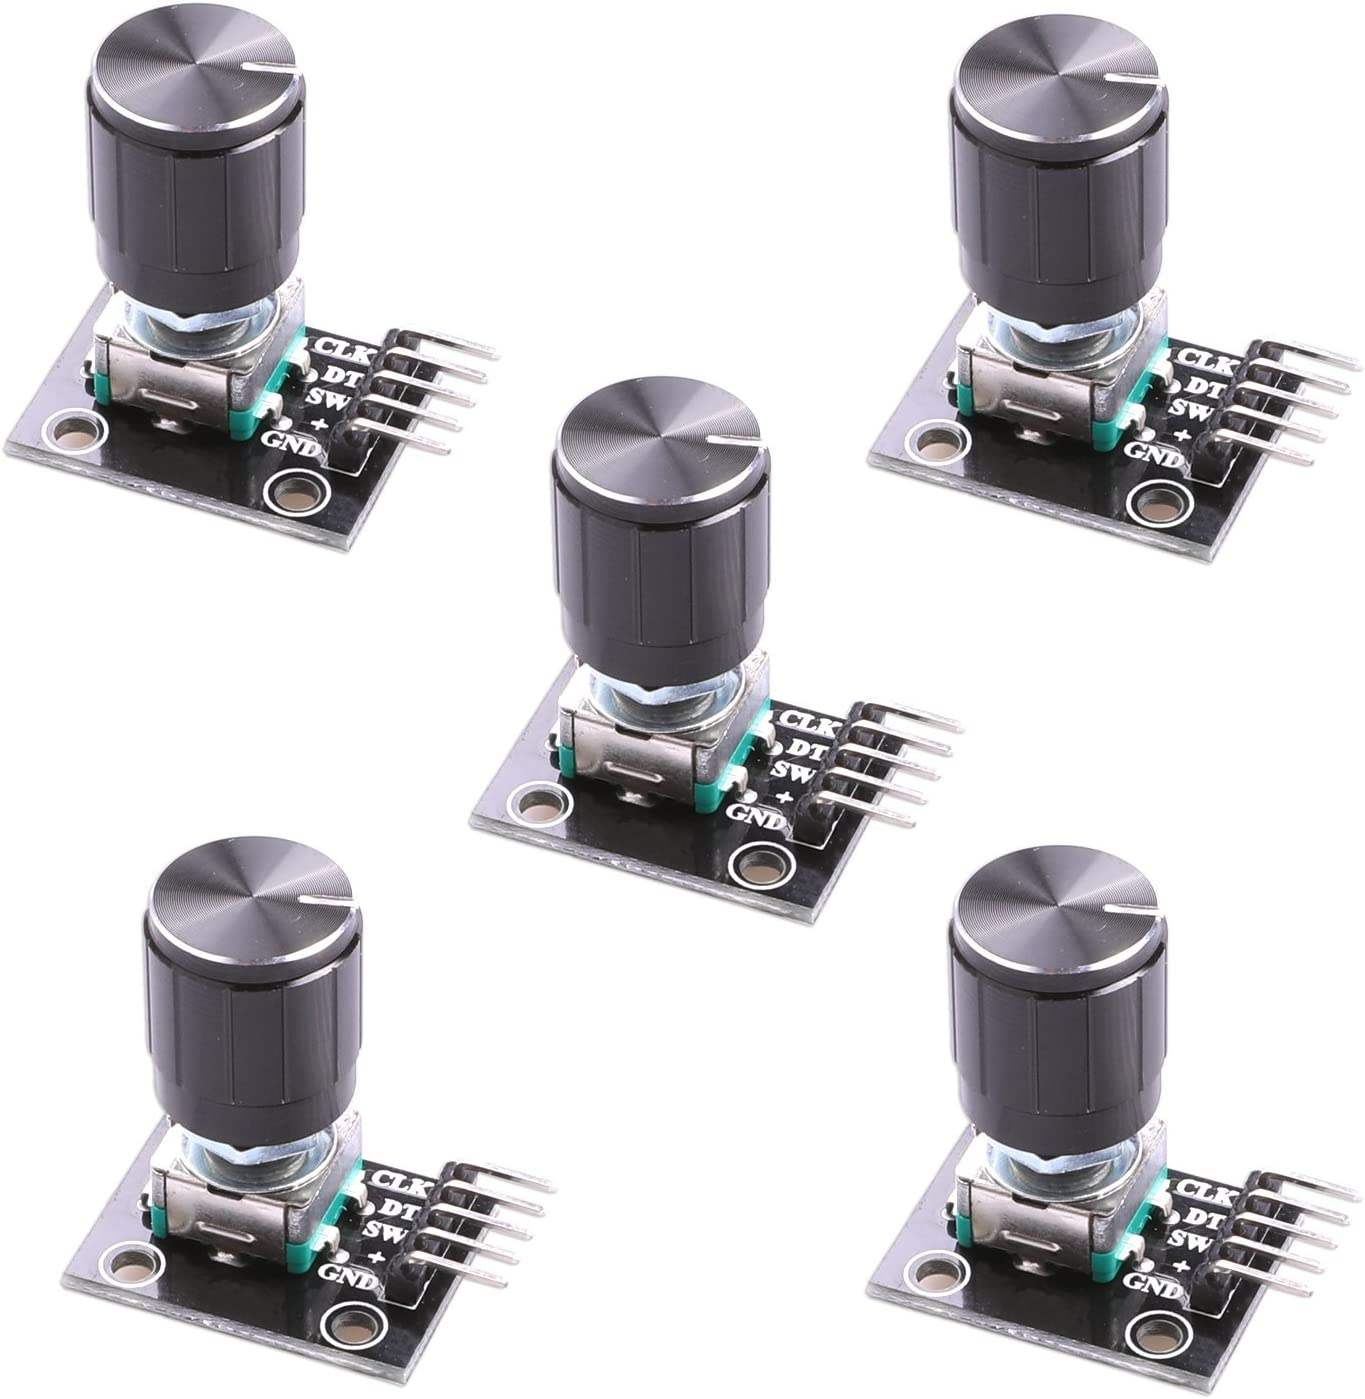 CPF-A-0402B68KE Pack of 100 RES SMD 68K OHM 0.1/% 1//16W 0402